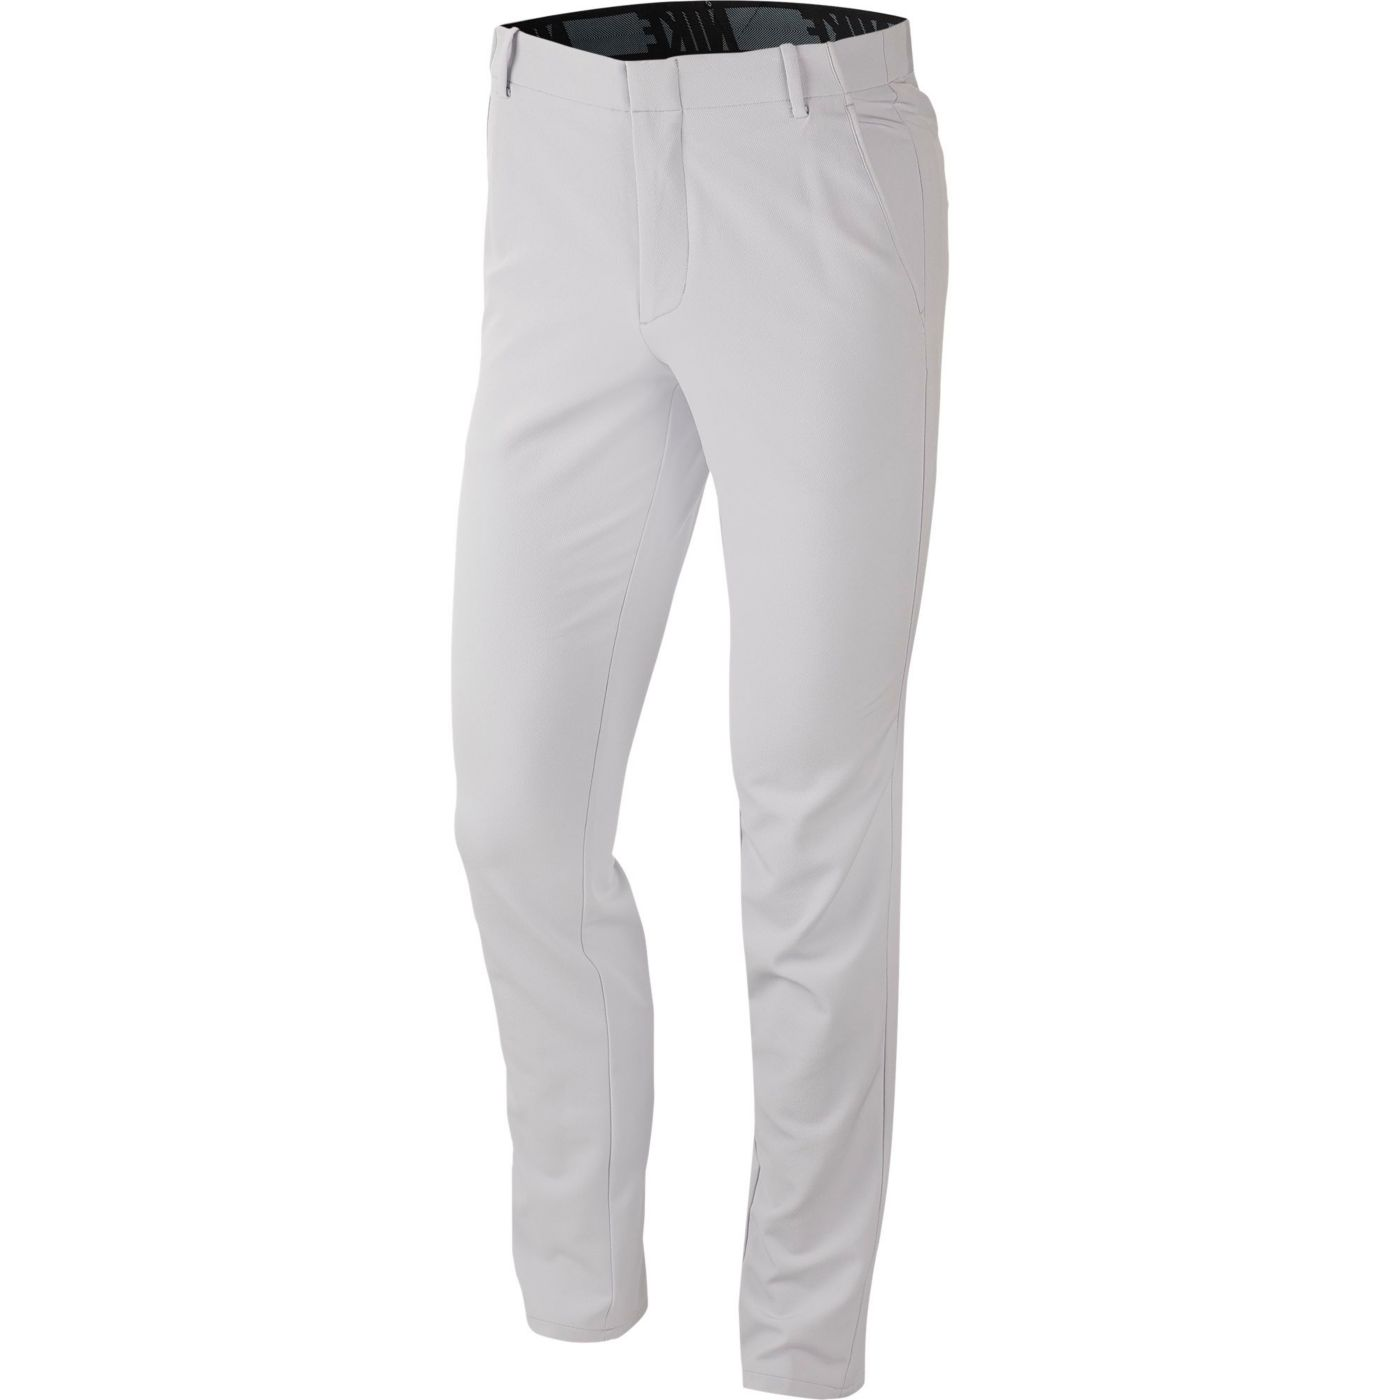 Nike Men's Slim Fit Flex Vapor Golf Pants